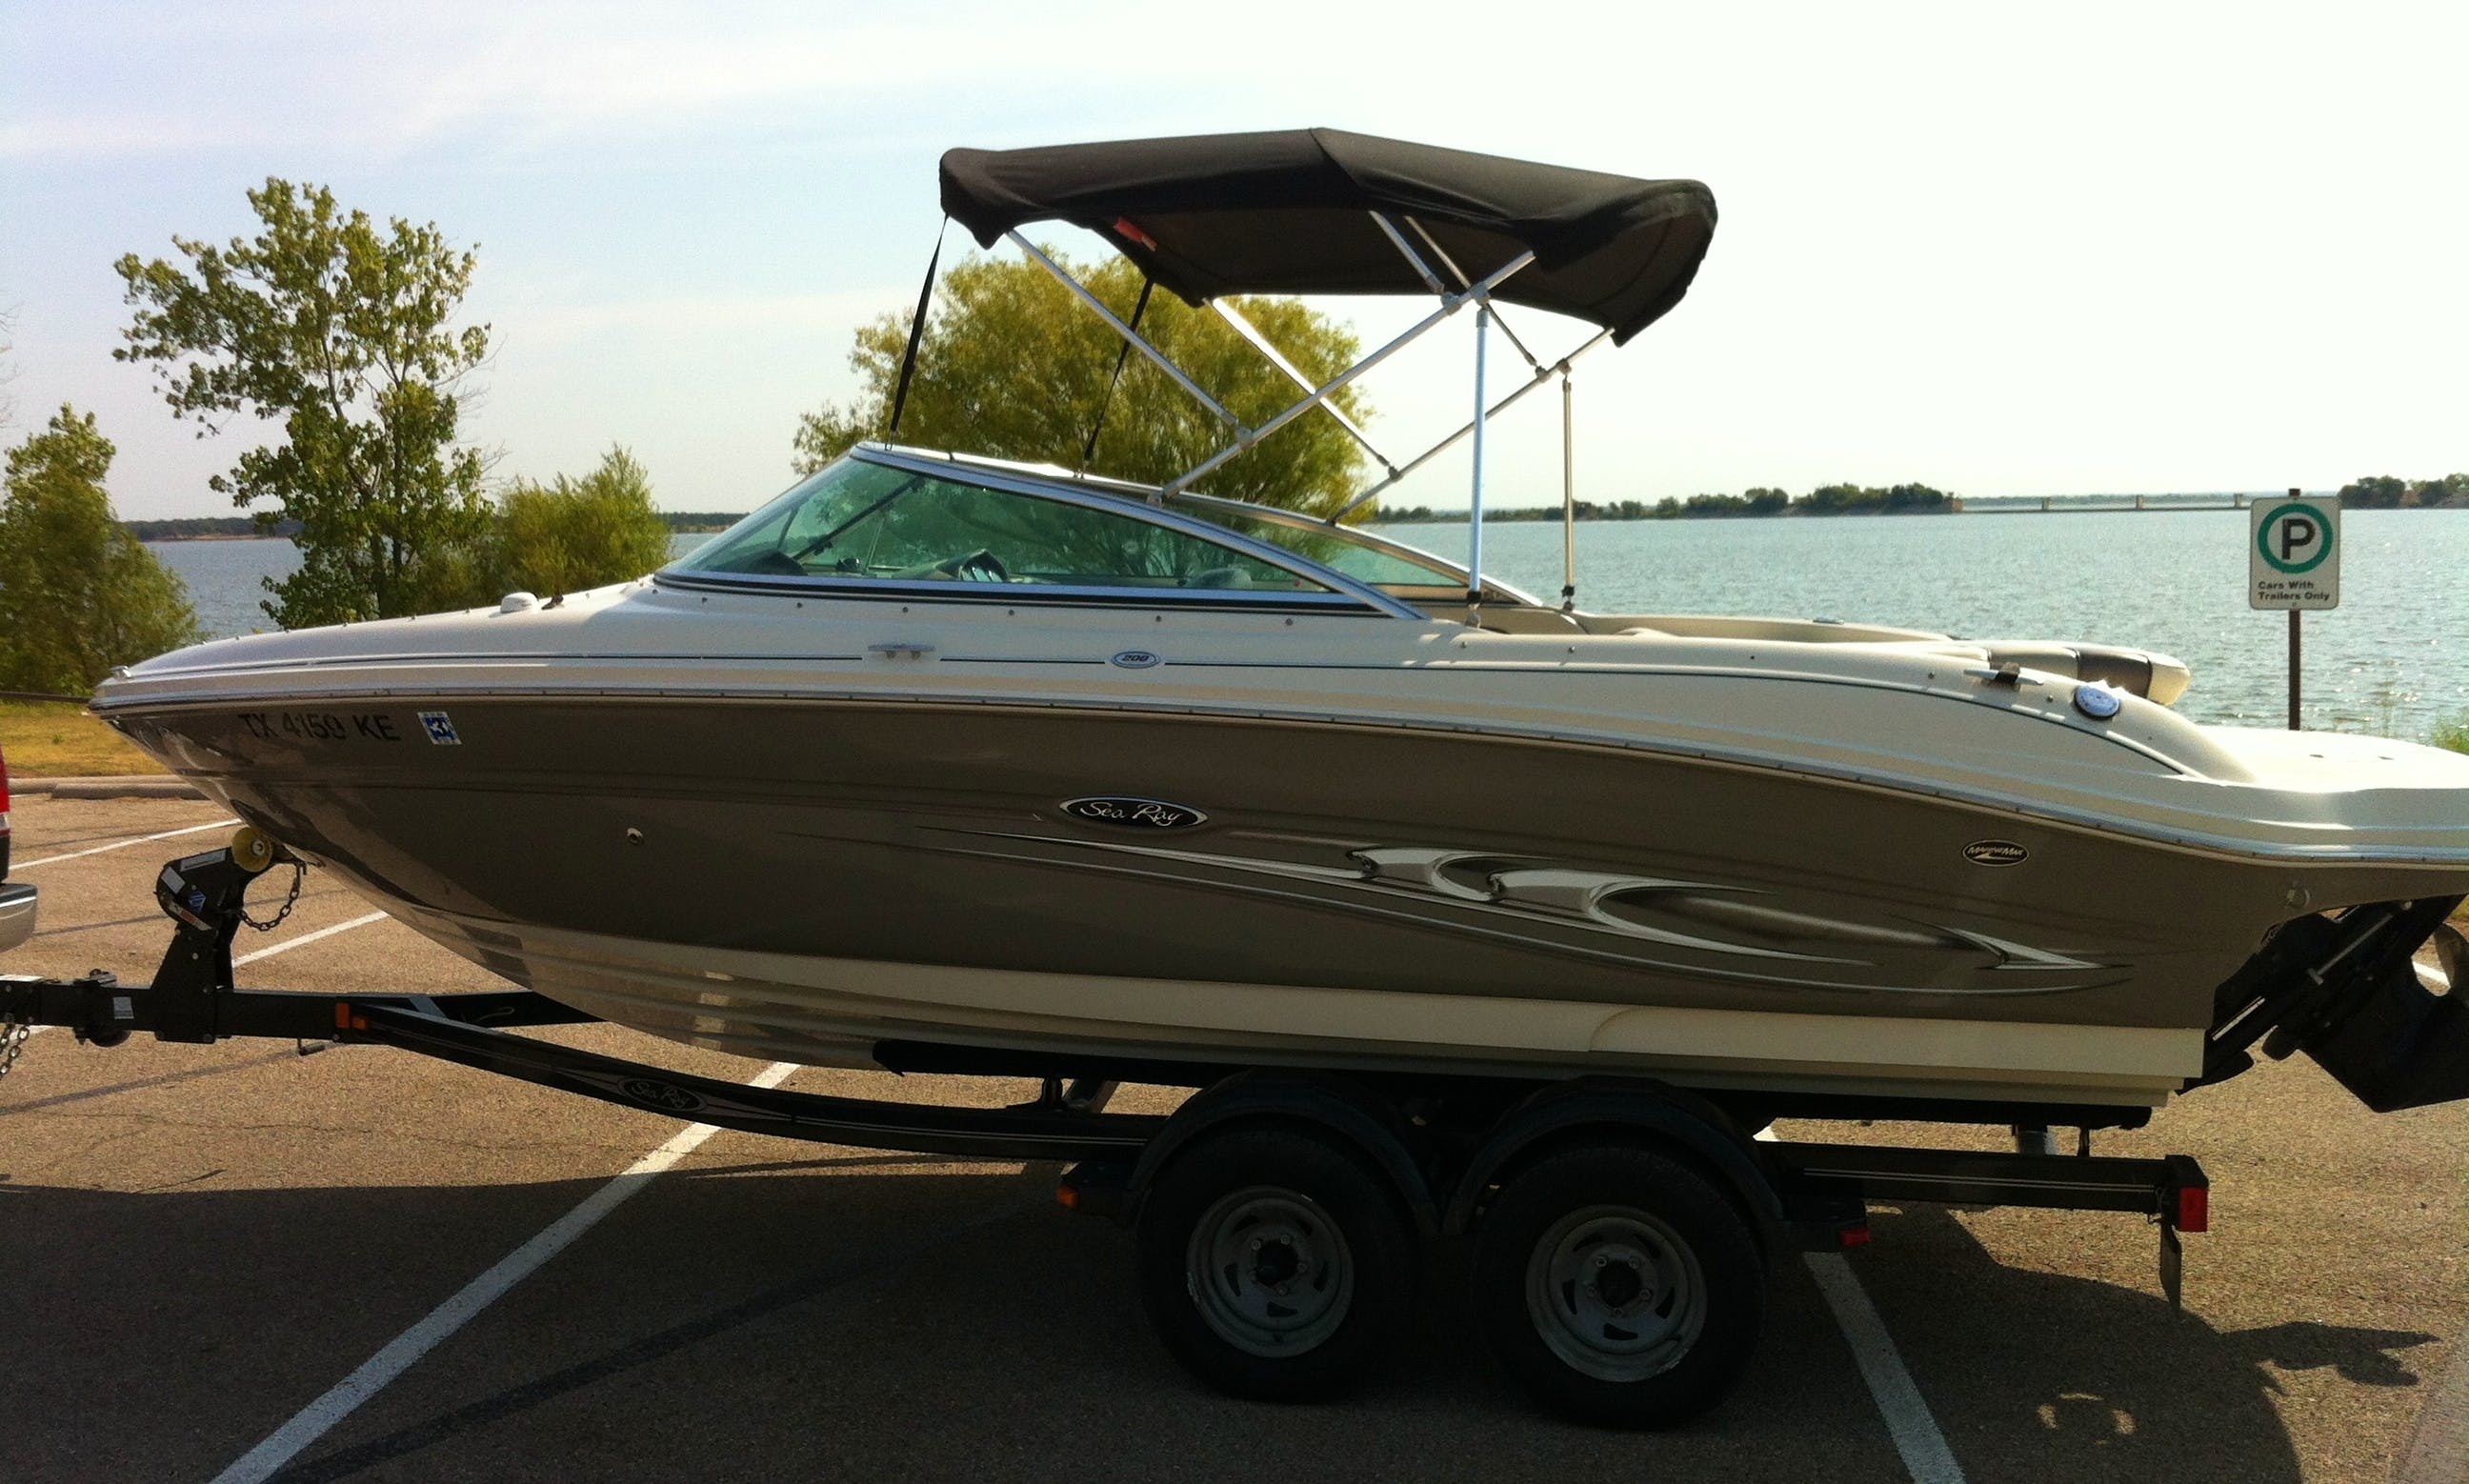 21' Sea Ray Ski/Wakeboard Boat for Rent near Lake Lewisville TX  Tow & Go ONLY